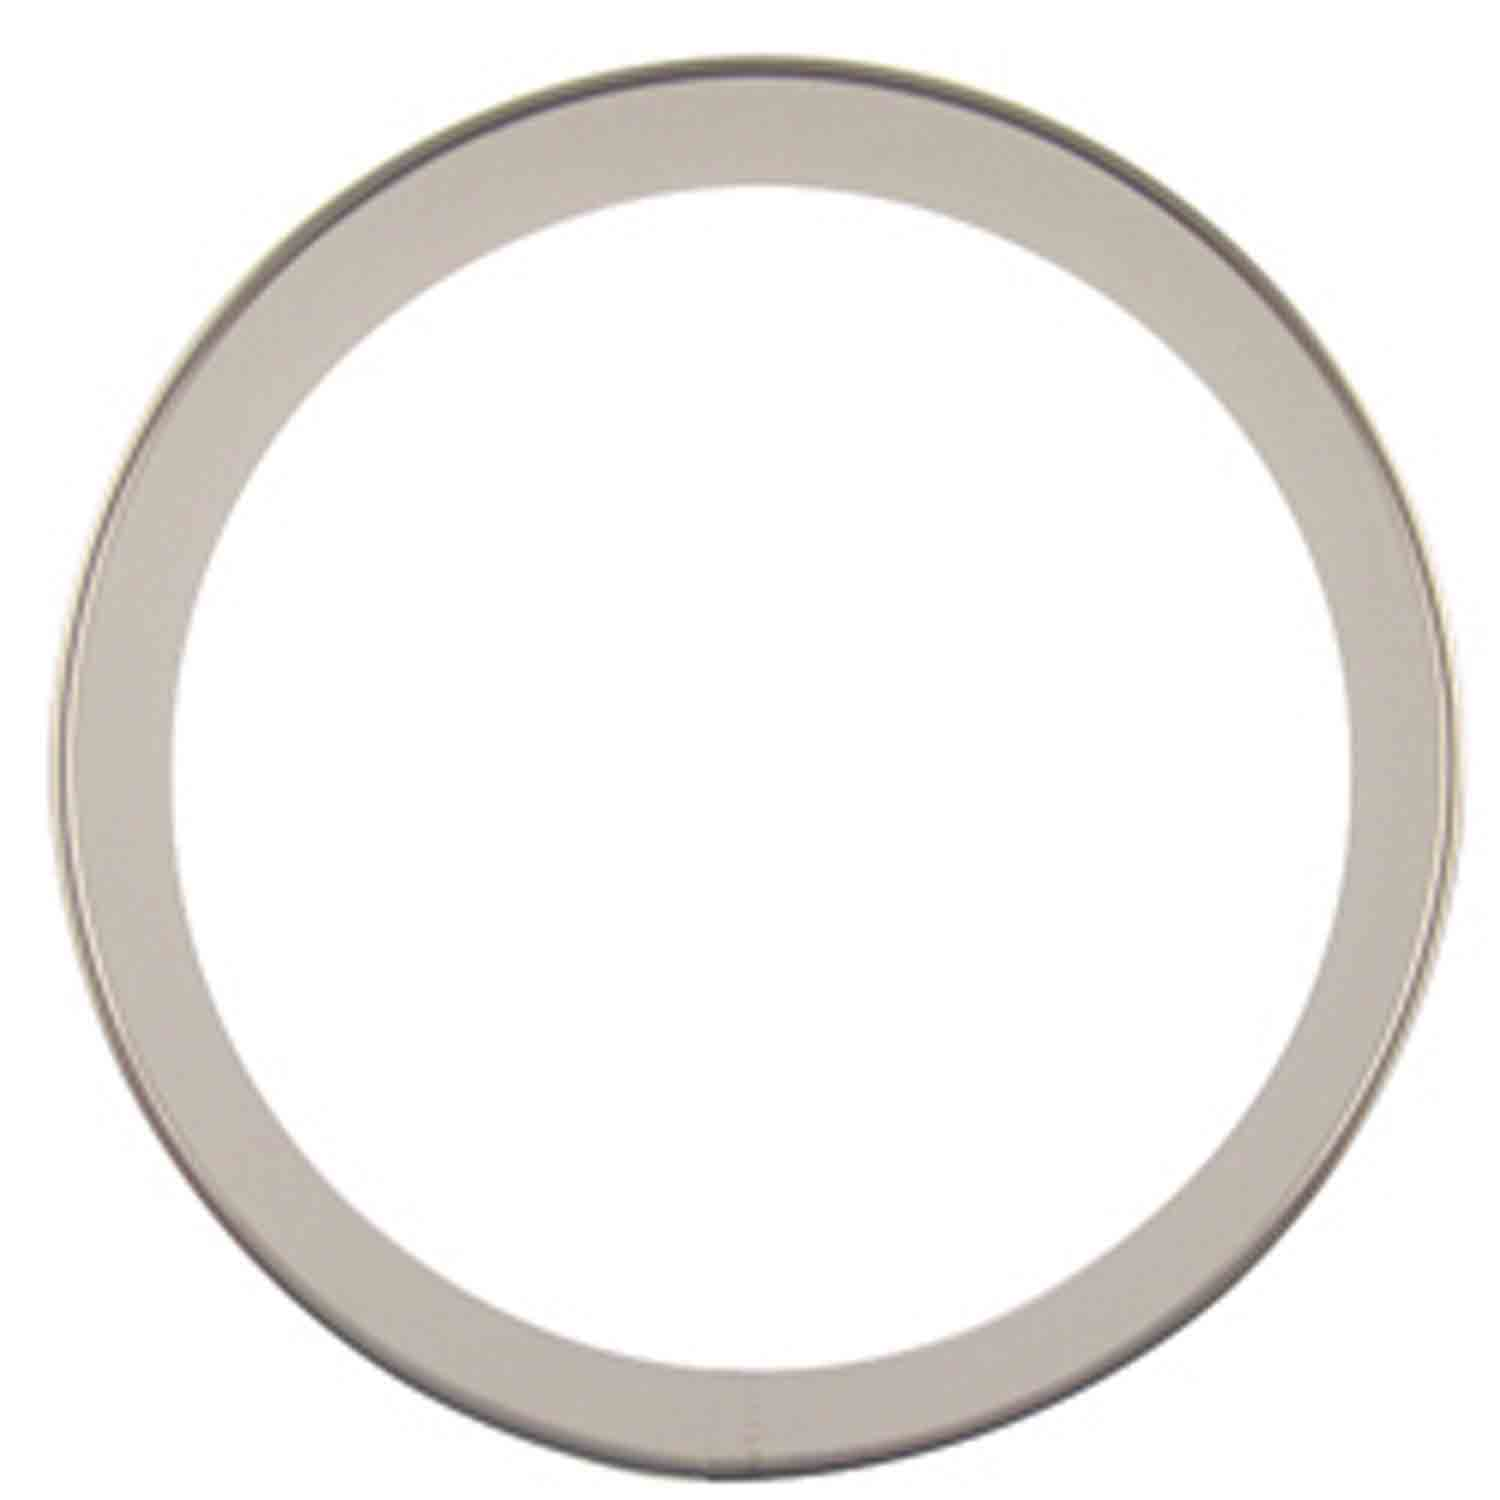 Biscuit Cutter Plain-1 1/2""